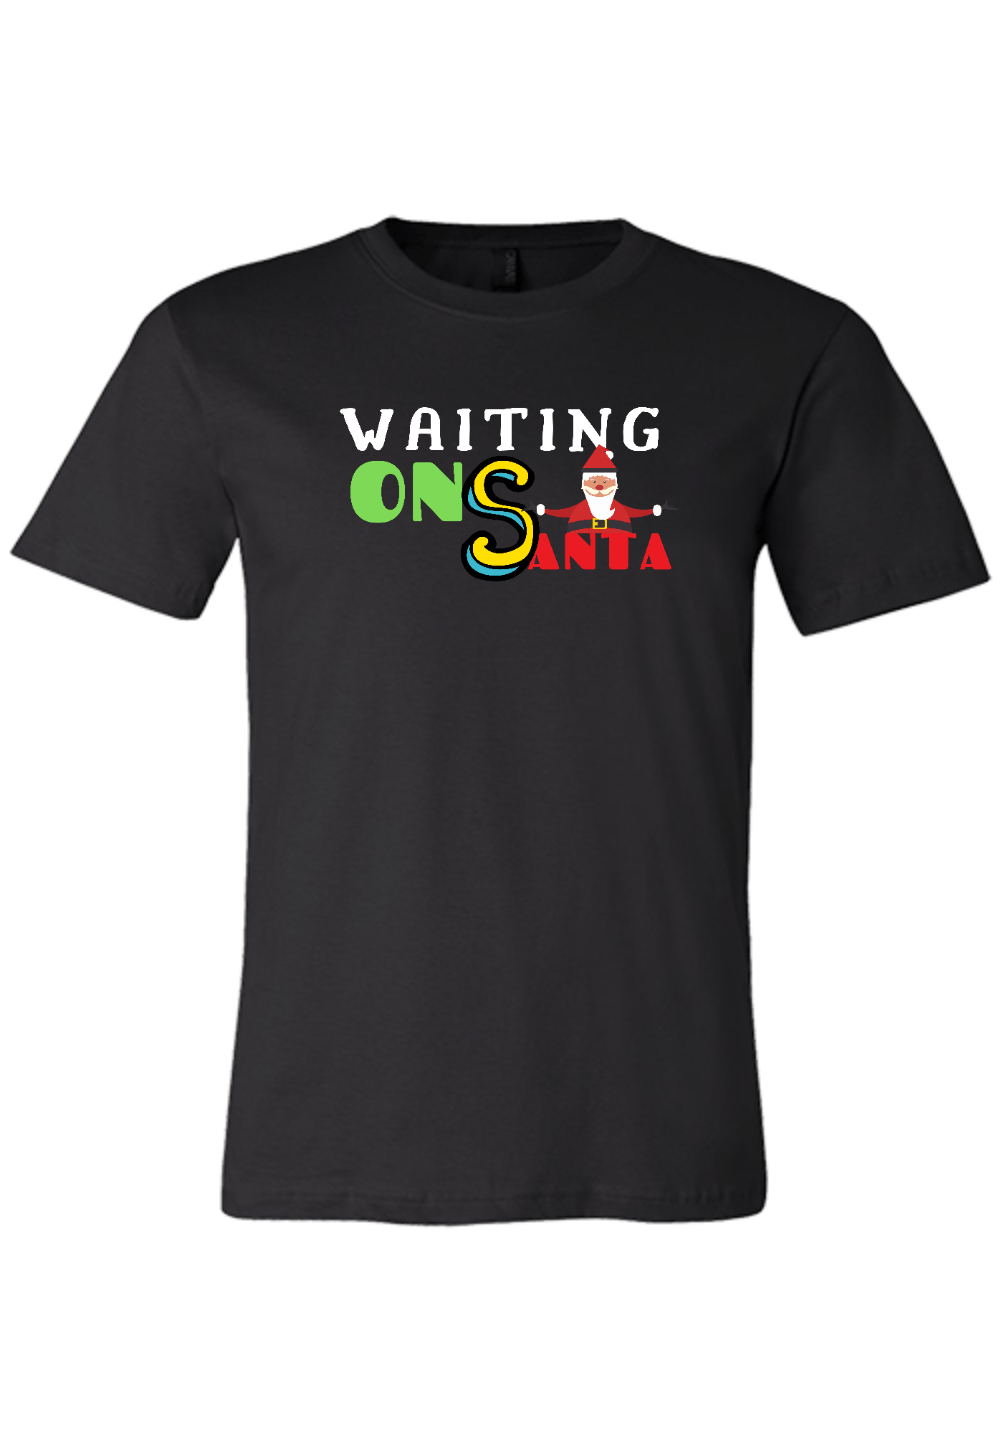 Waiting on Santa Christmas Shirt